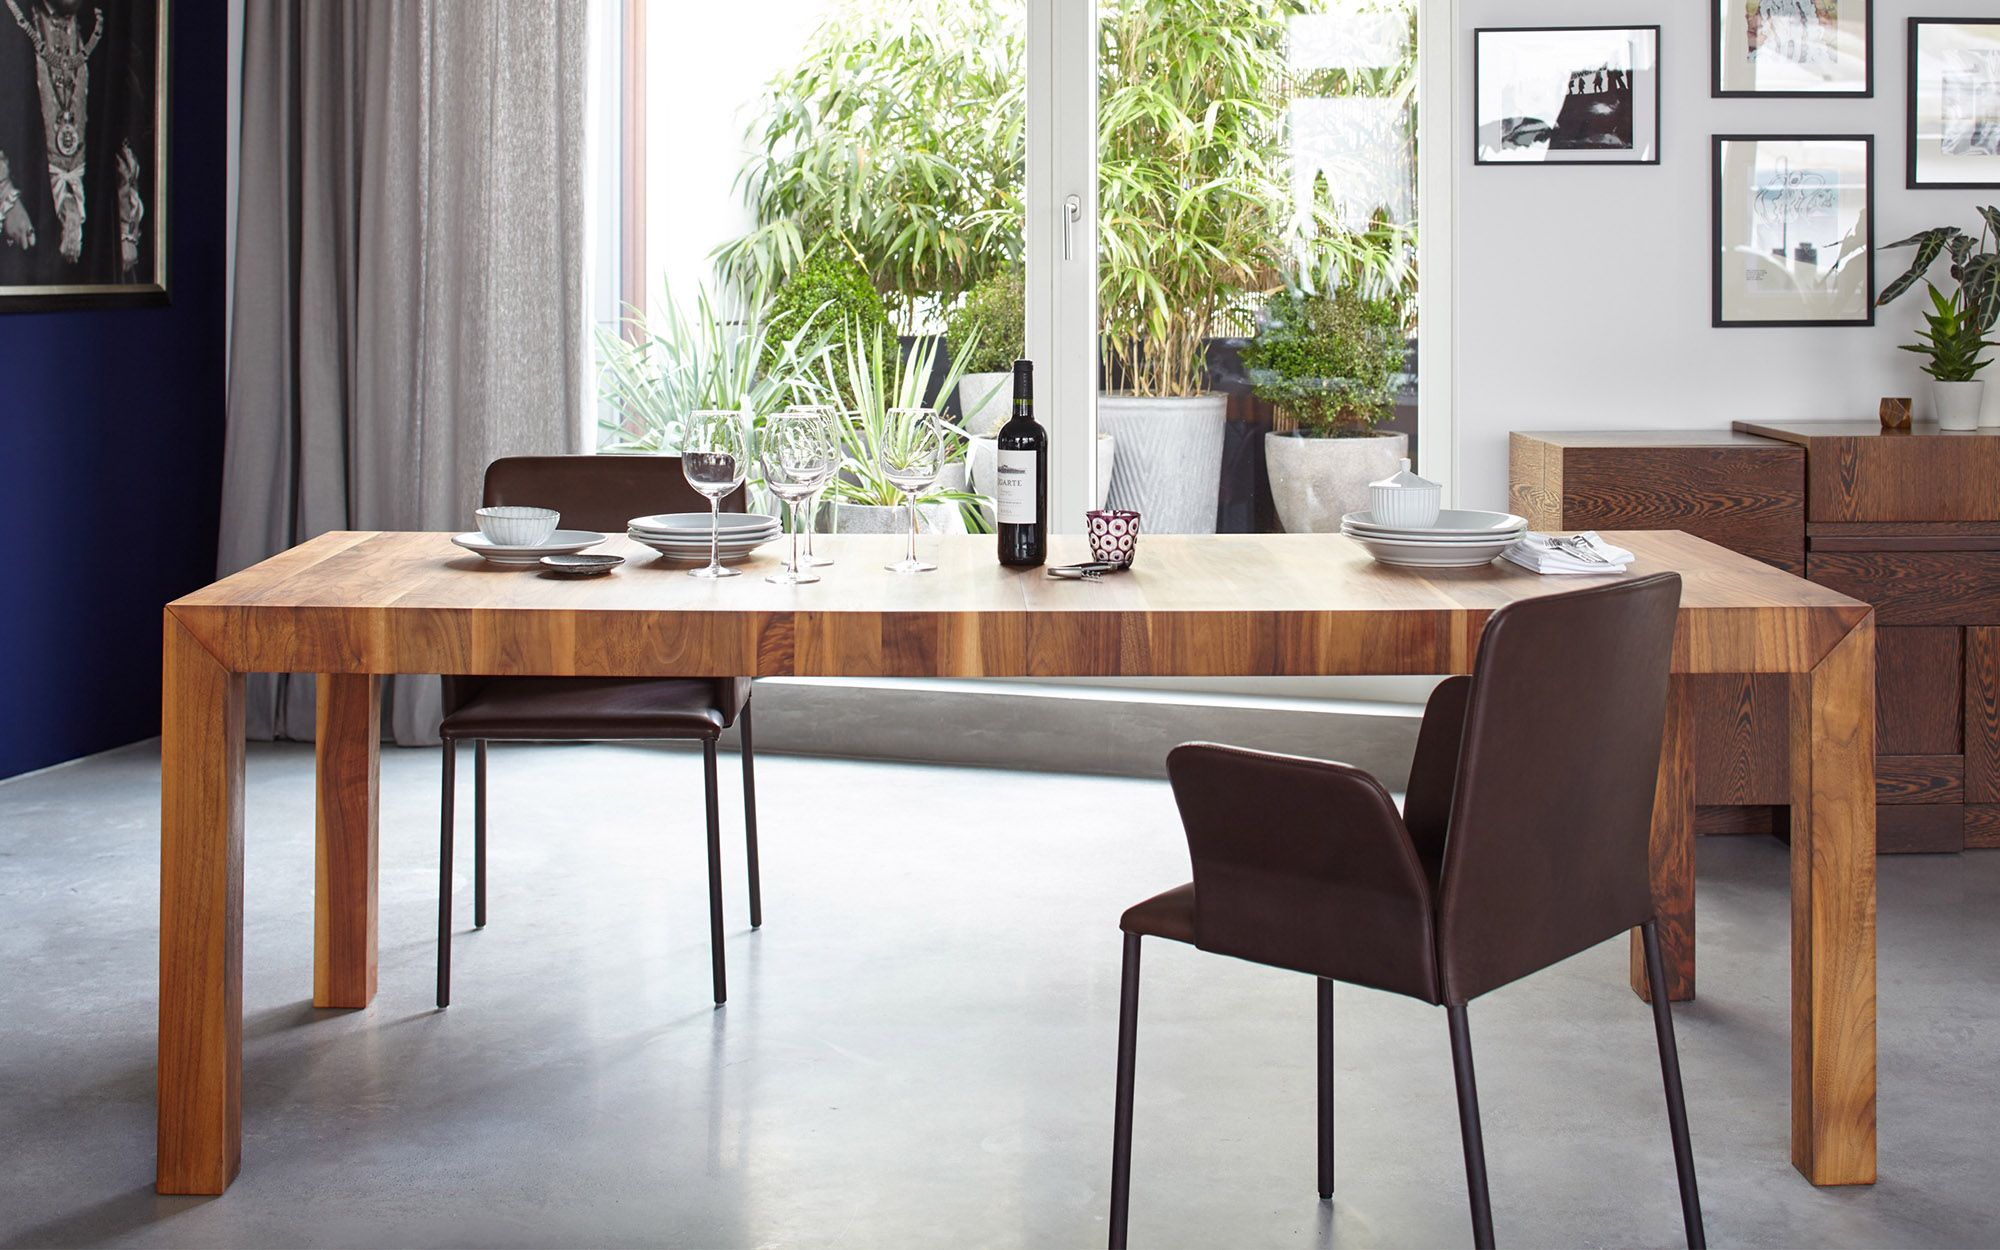 Living Room Furniture By More Volta Table And Corbo Chair - Wohn Und Esszimmer Möbel